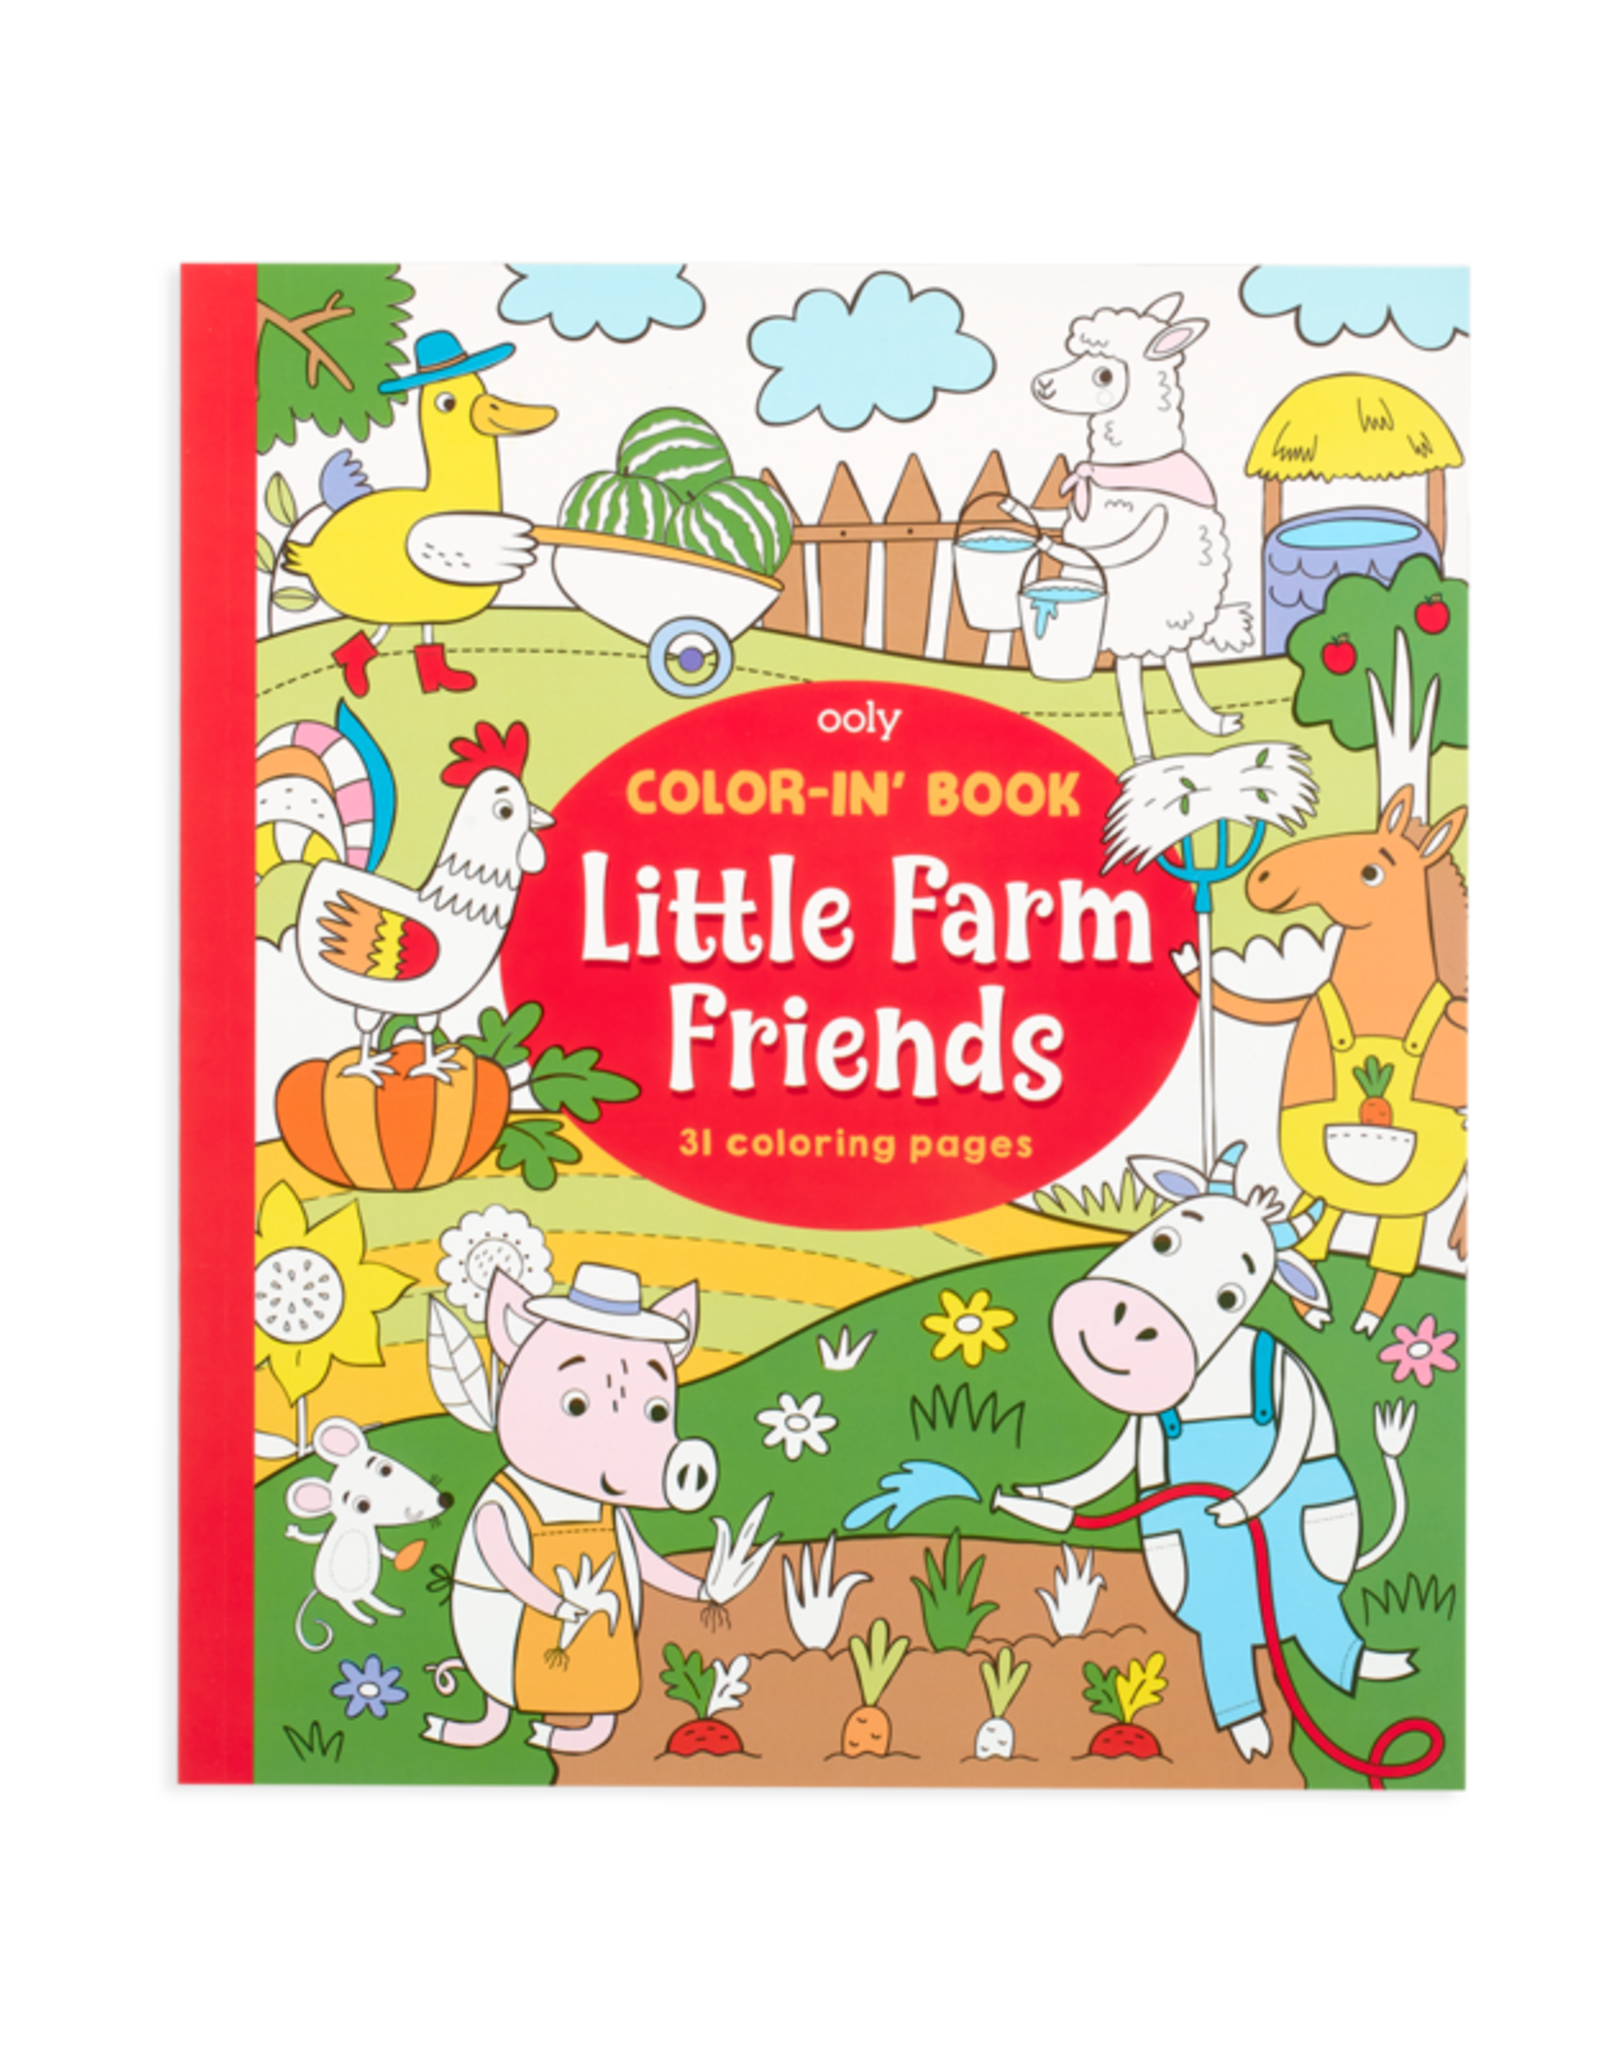 OOLY COLOR-IN BOOK - LITTLE FARM ANIMALS